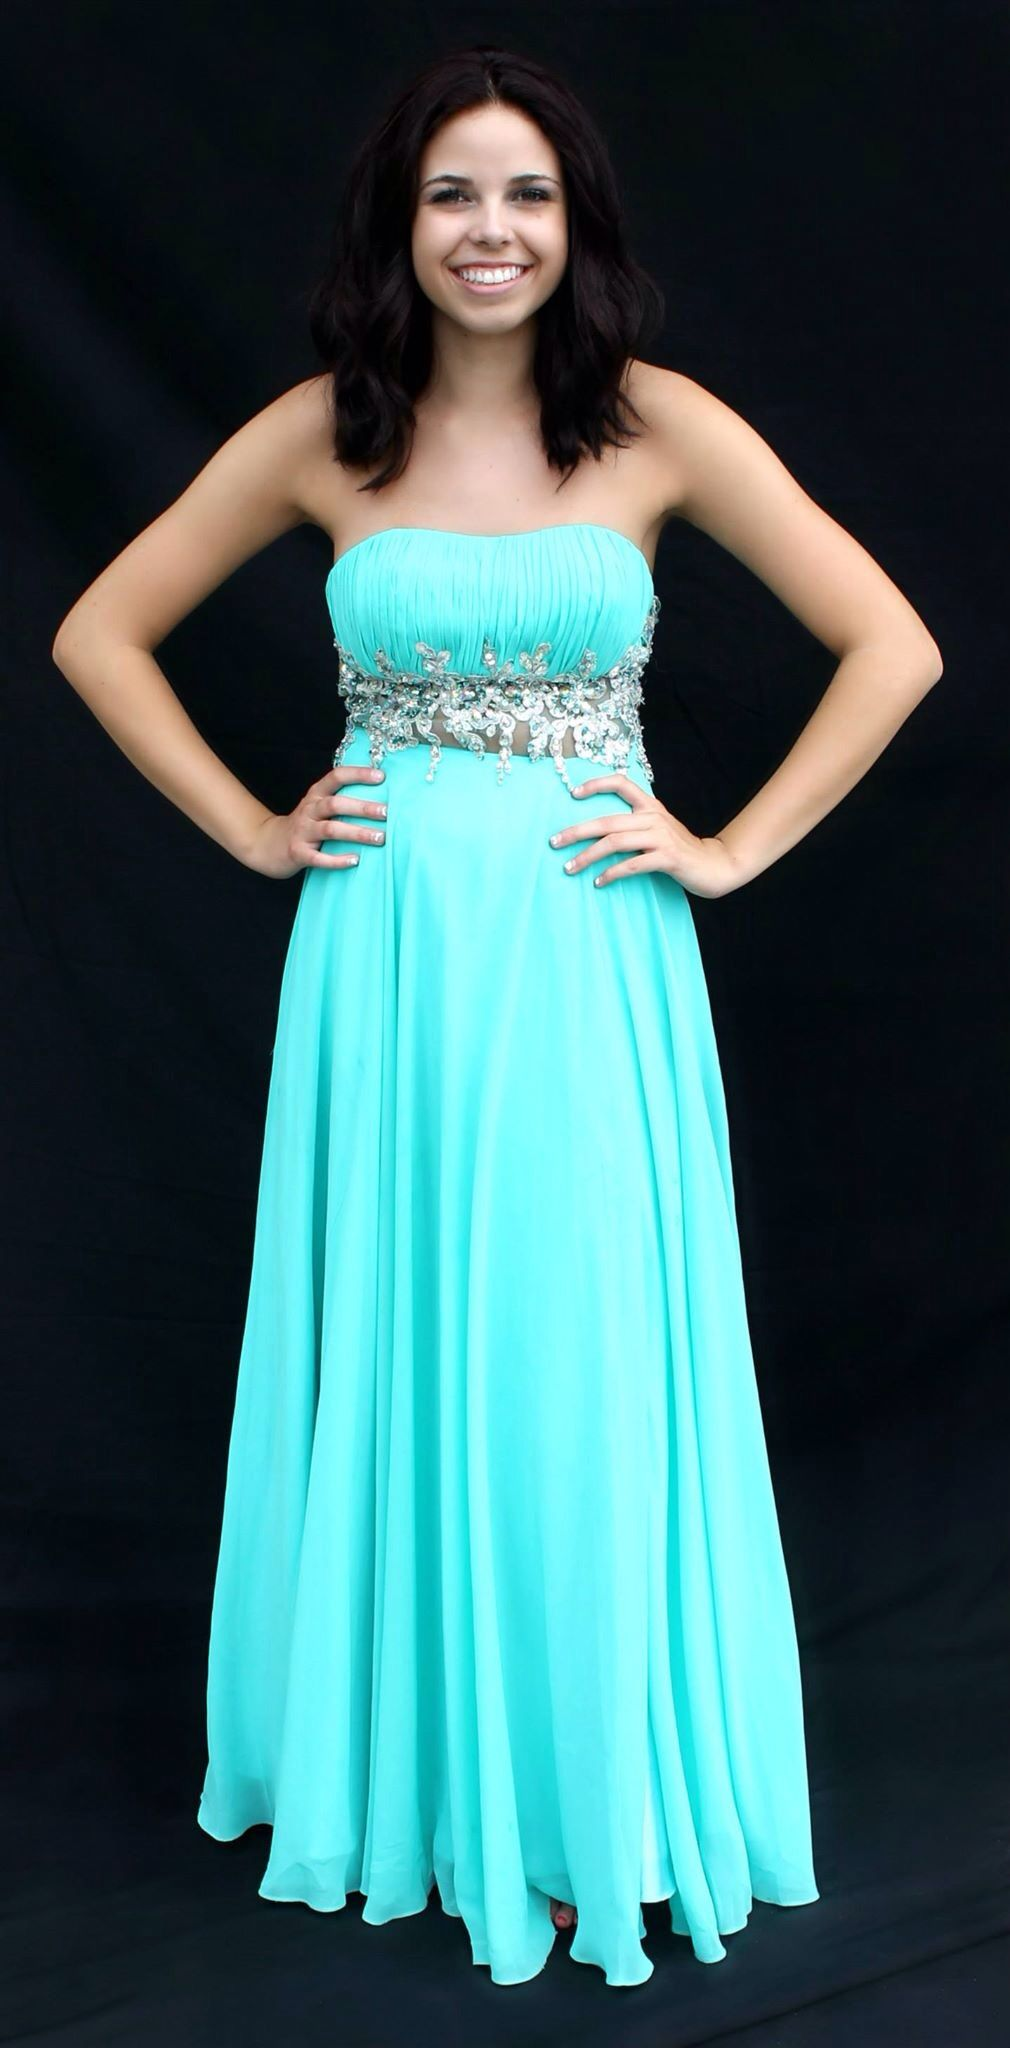 new turquoise blue prom or homecoming dress! Available for rent at ...